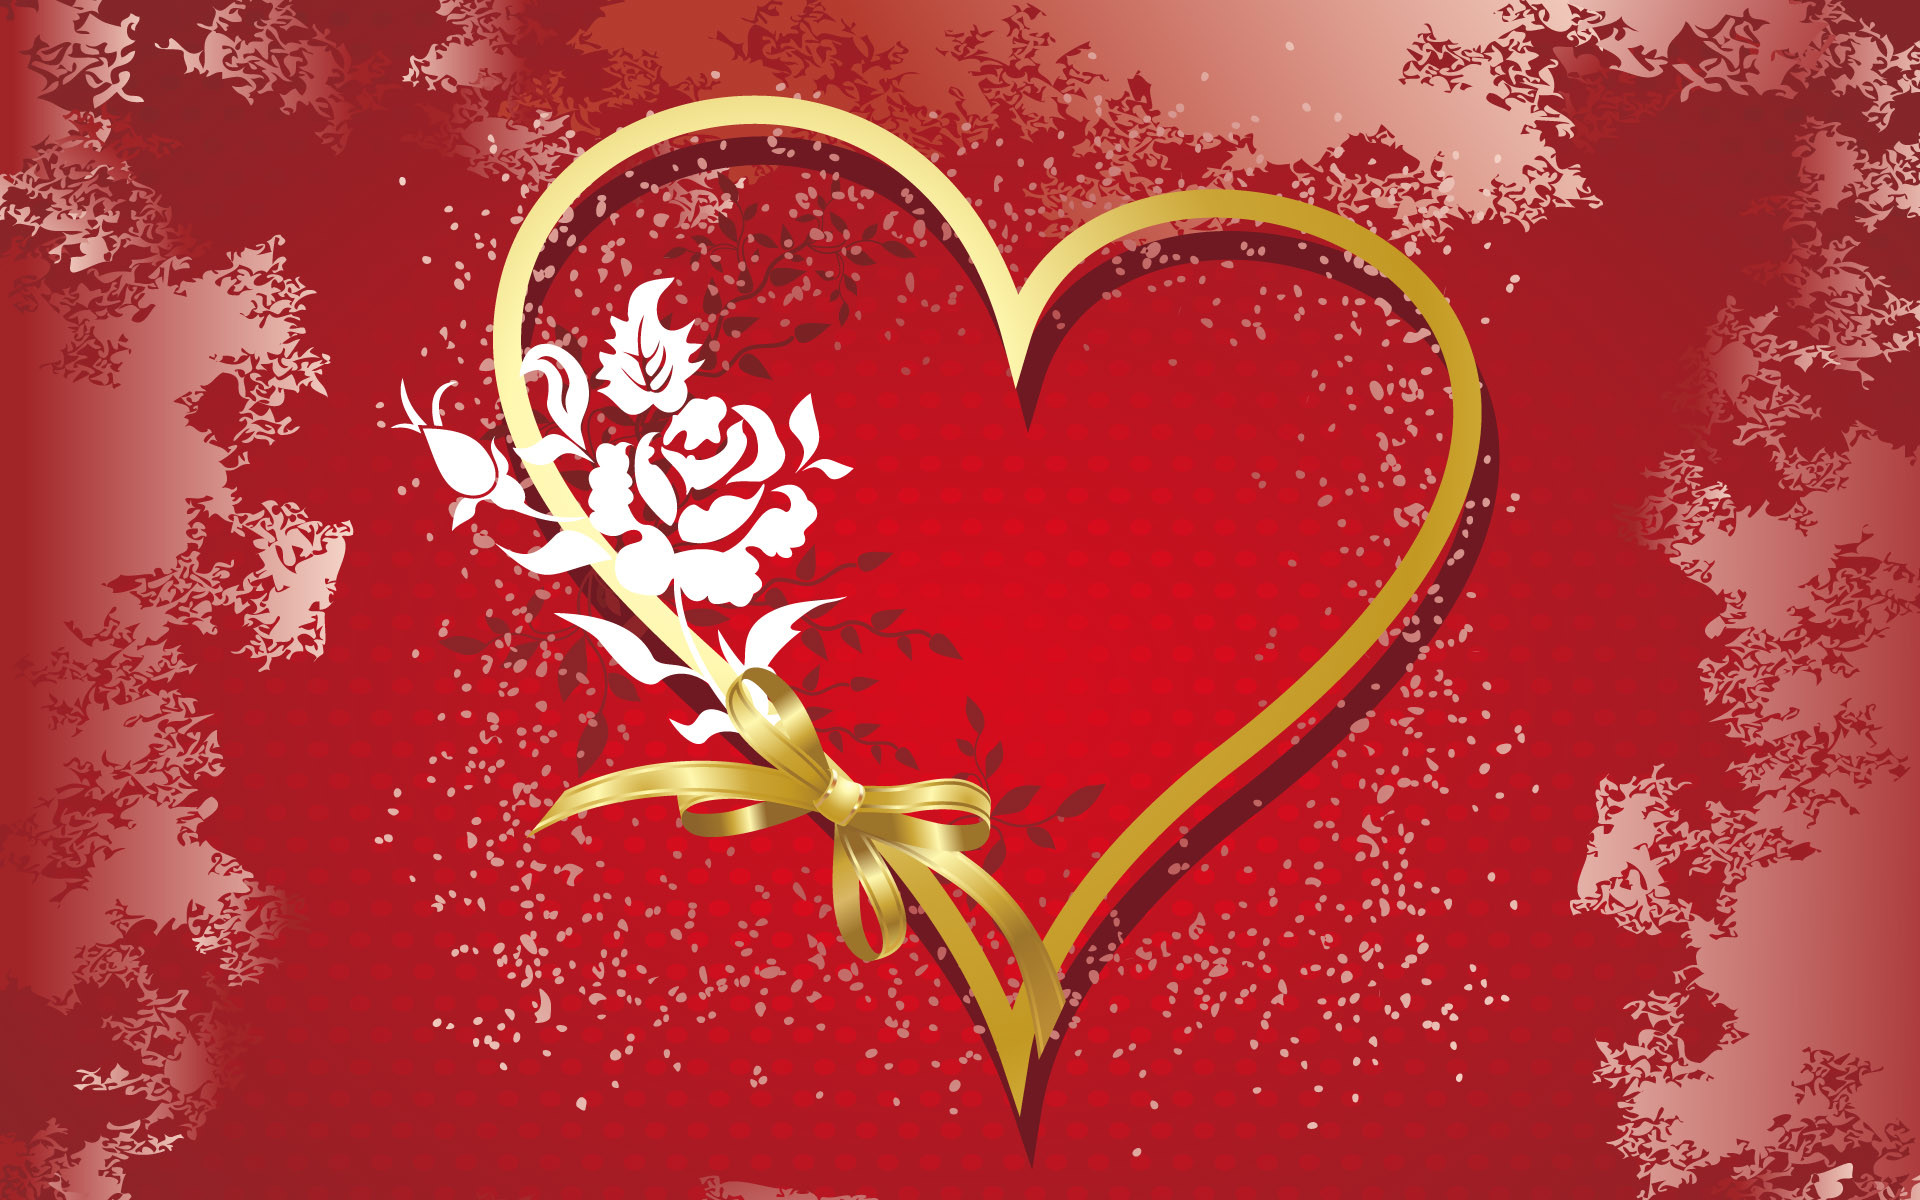 Beautiful Love Backgrounds 58 images